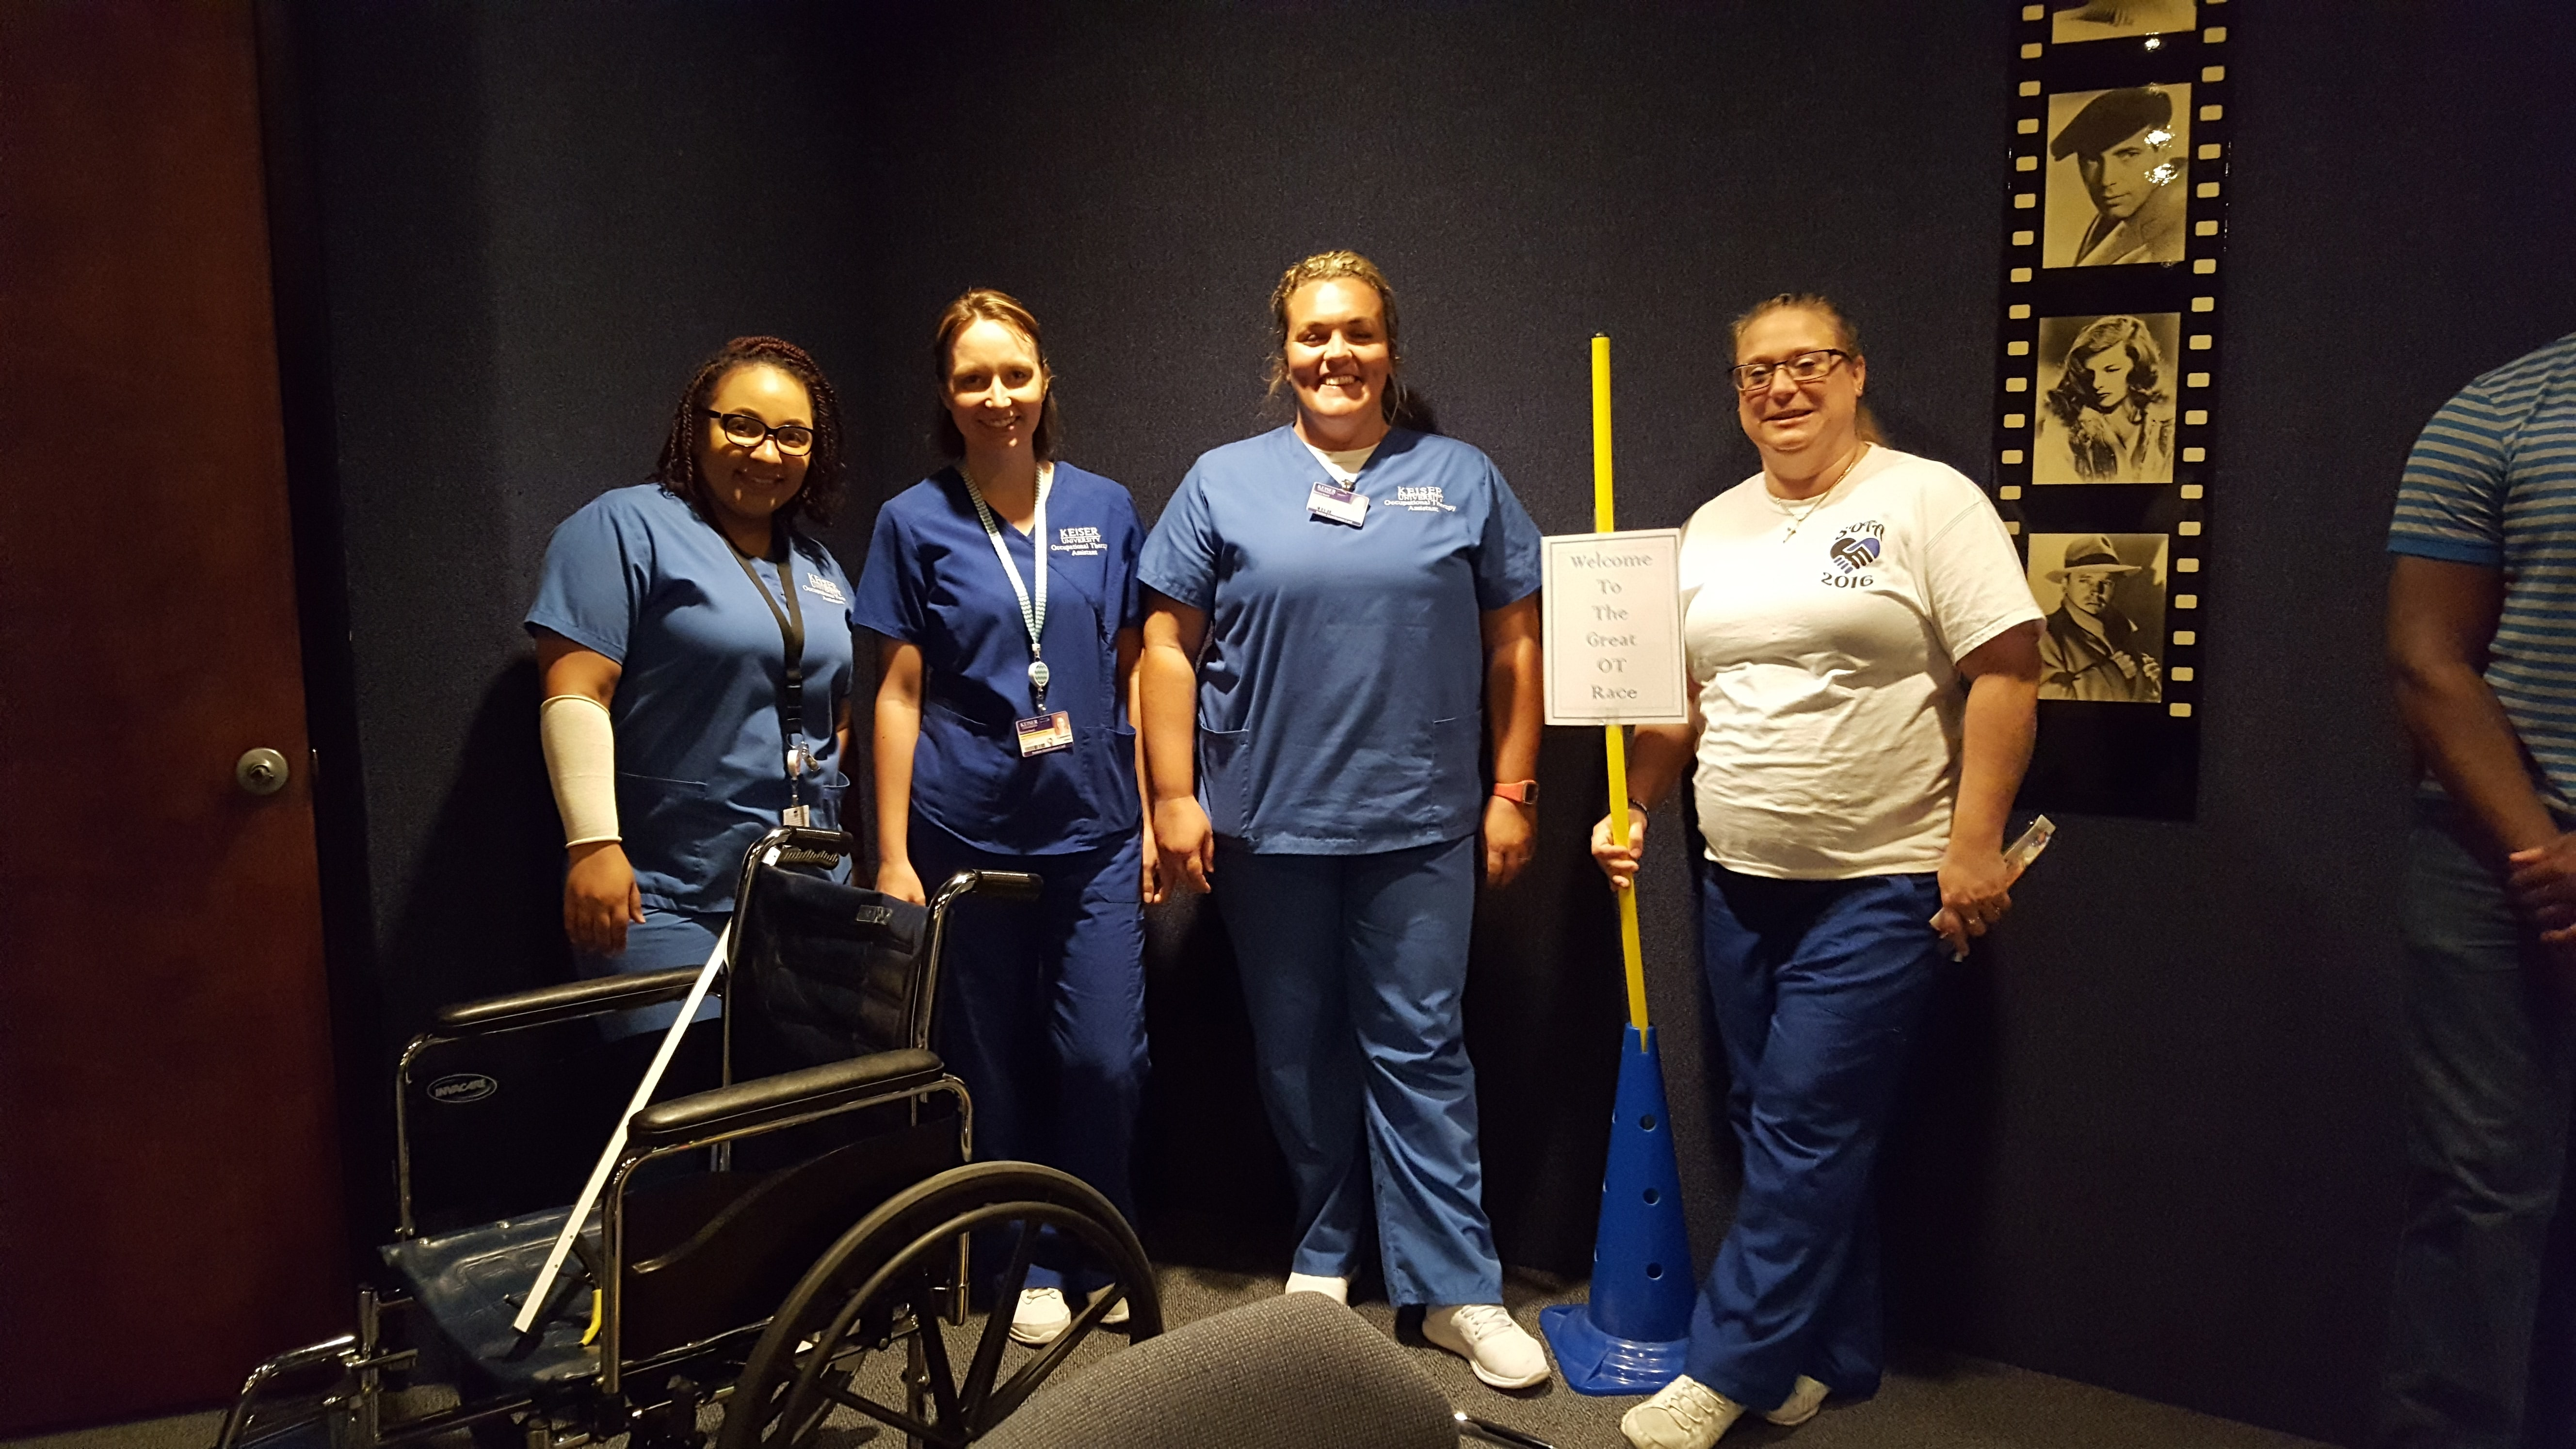 Daytona OTA Students Celebrate National Occupational Therapy Month